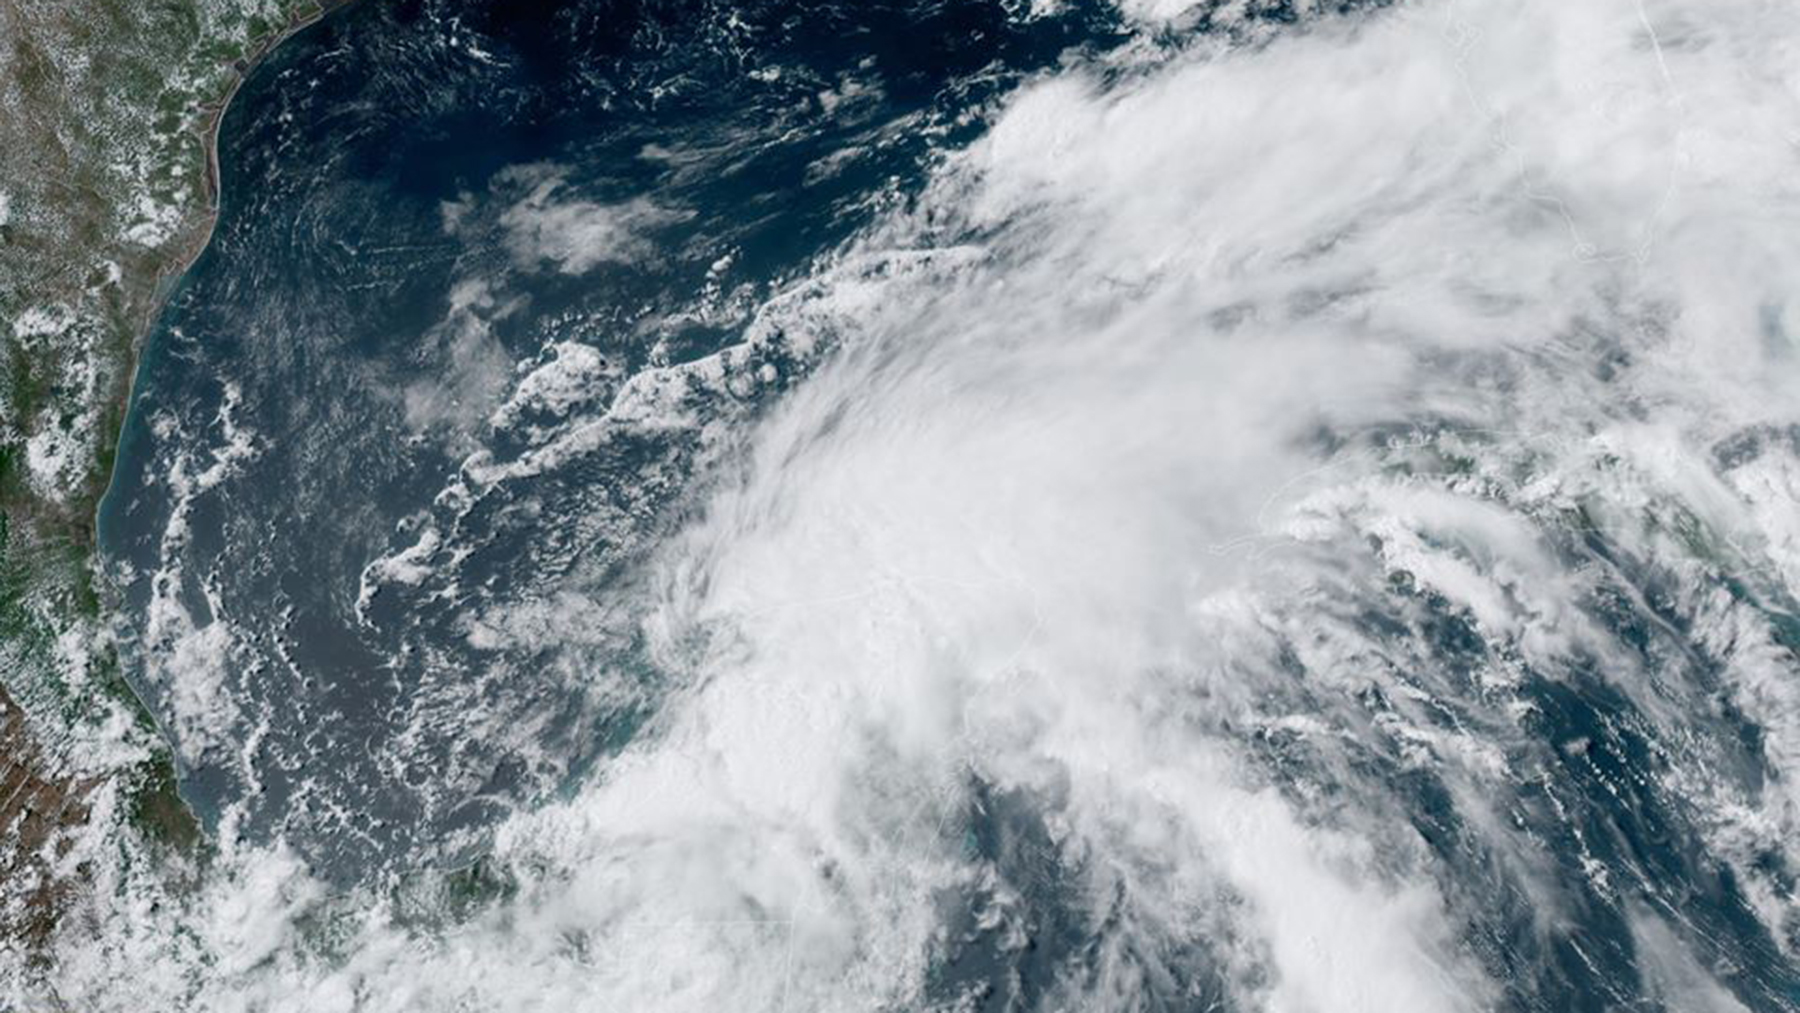 Tropical Storm Cristobal, in an image released by the National Hurricane Center on the afternoon of June 4, 2020. (Photo courtesy of the National Hurricane Center)